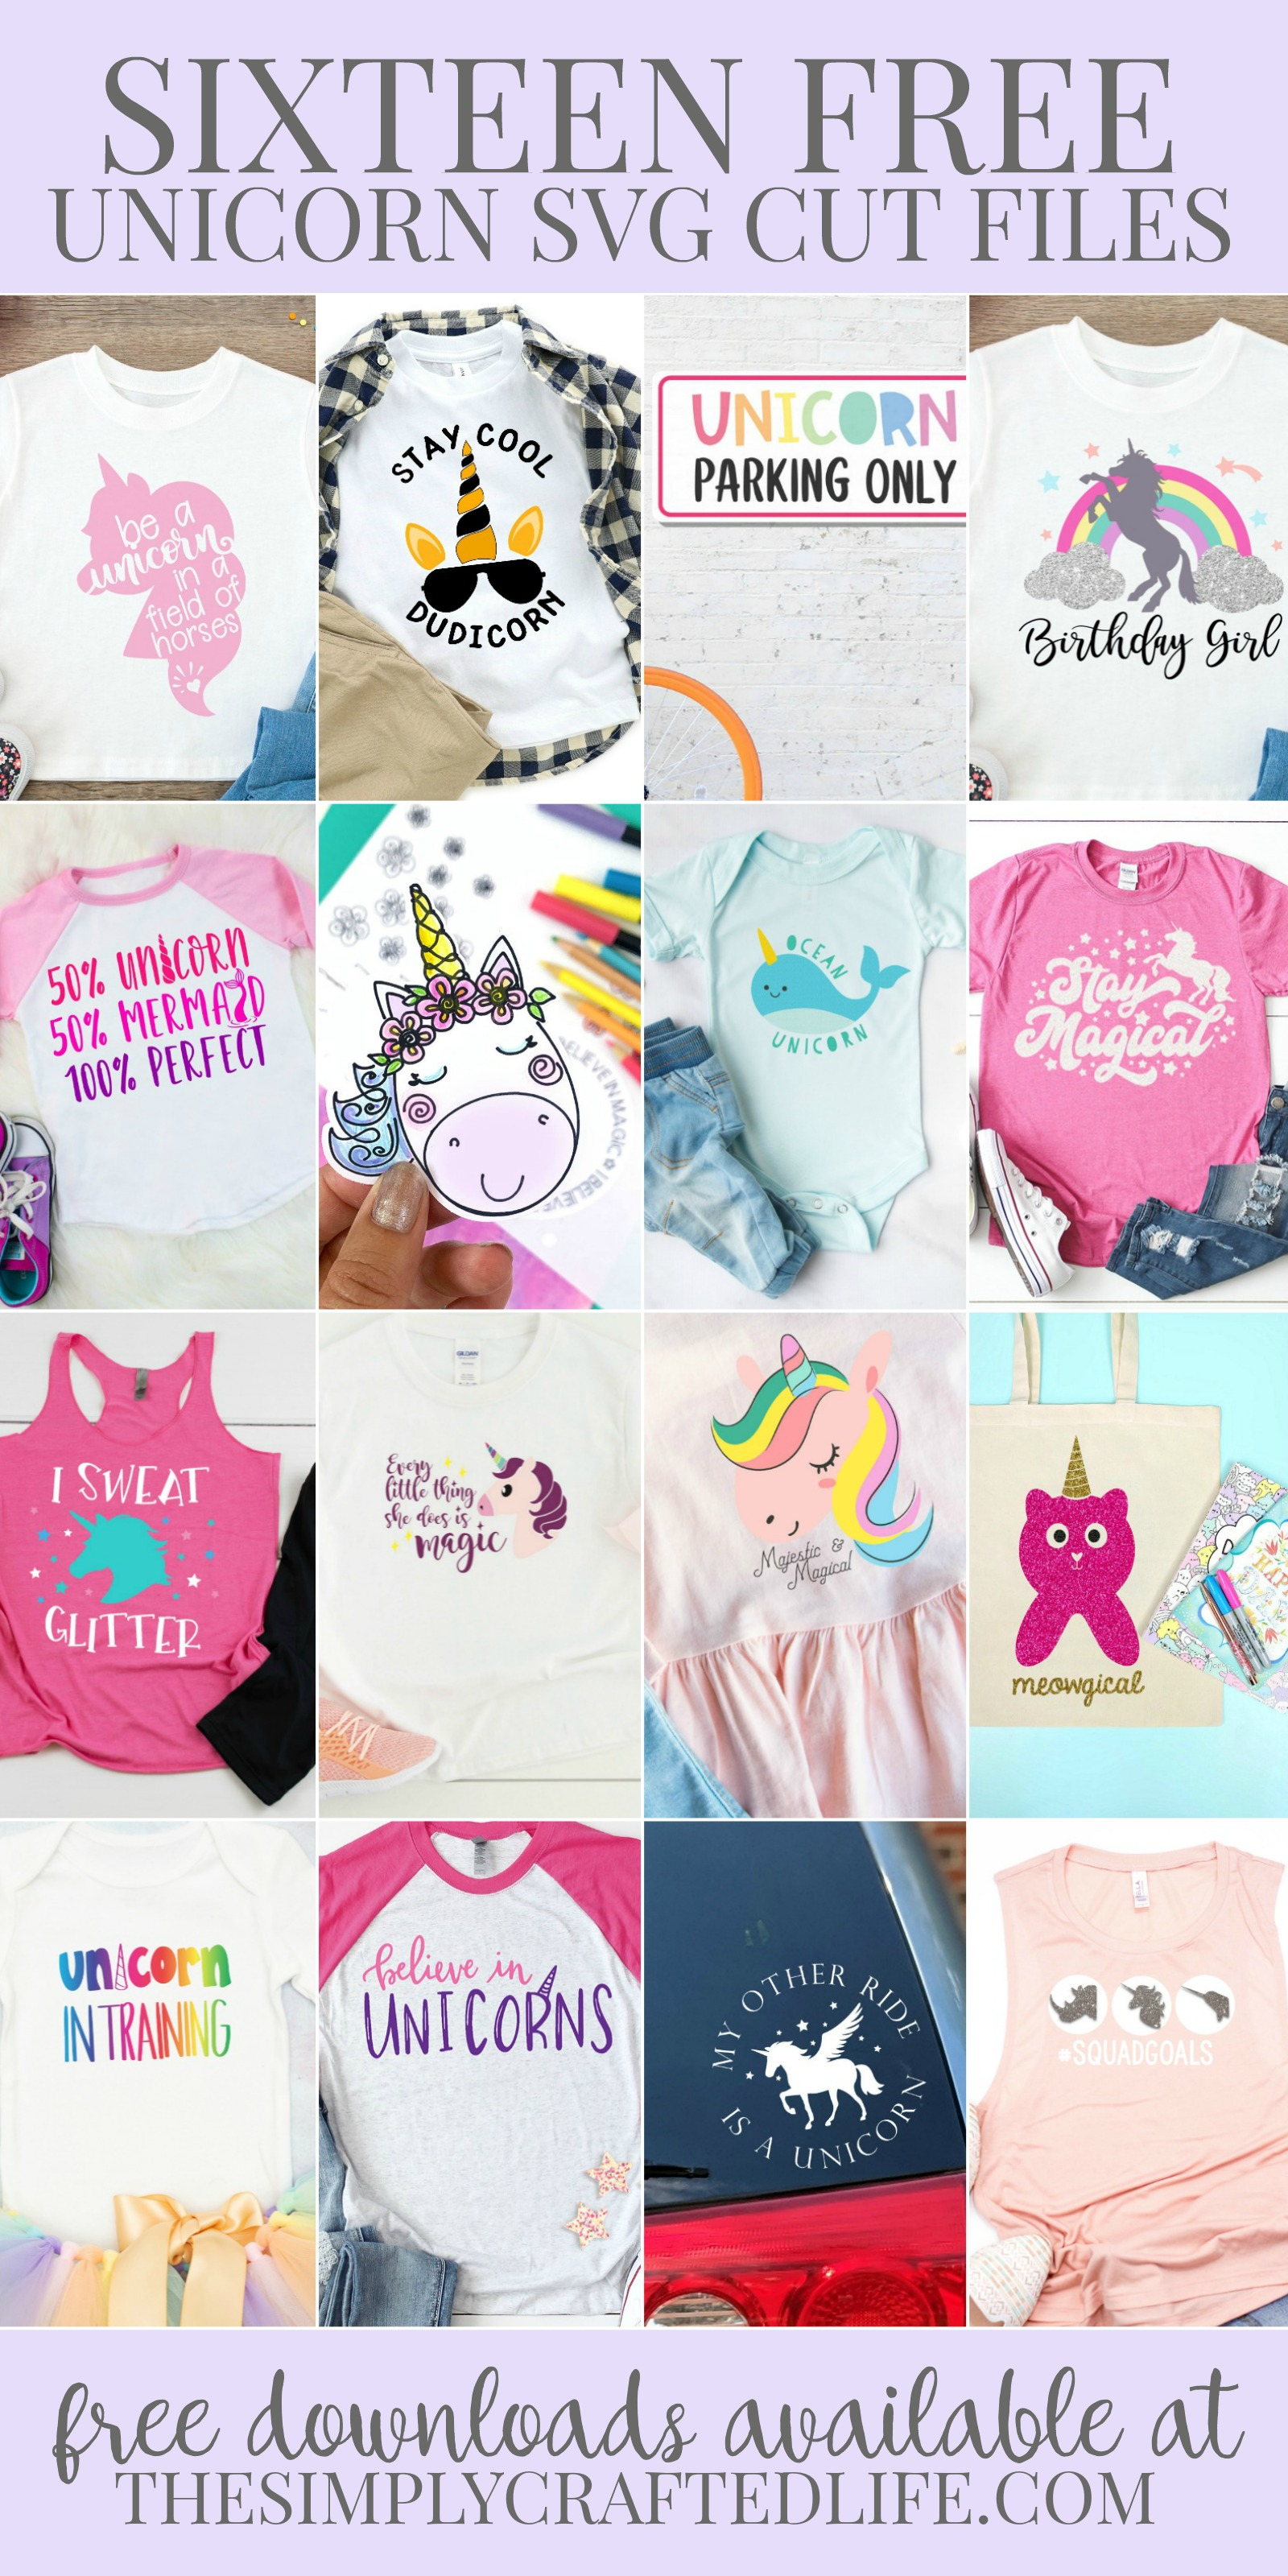 Free Unicorn Svg Cut Files The Simply Crafted Life